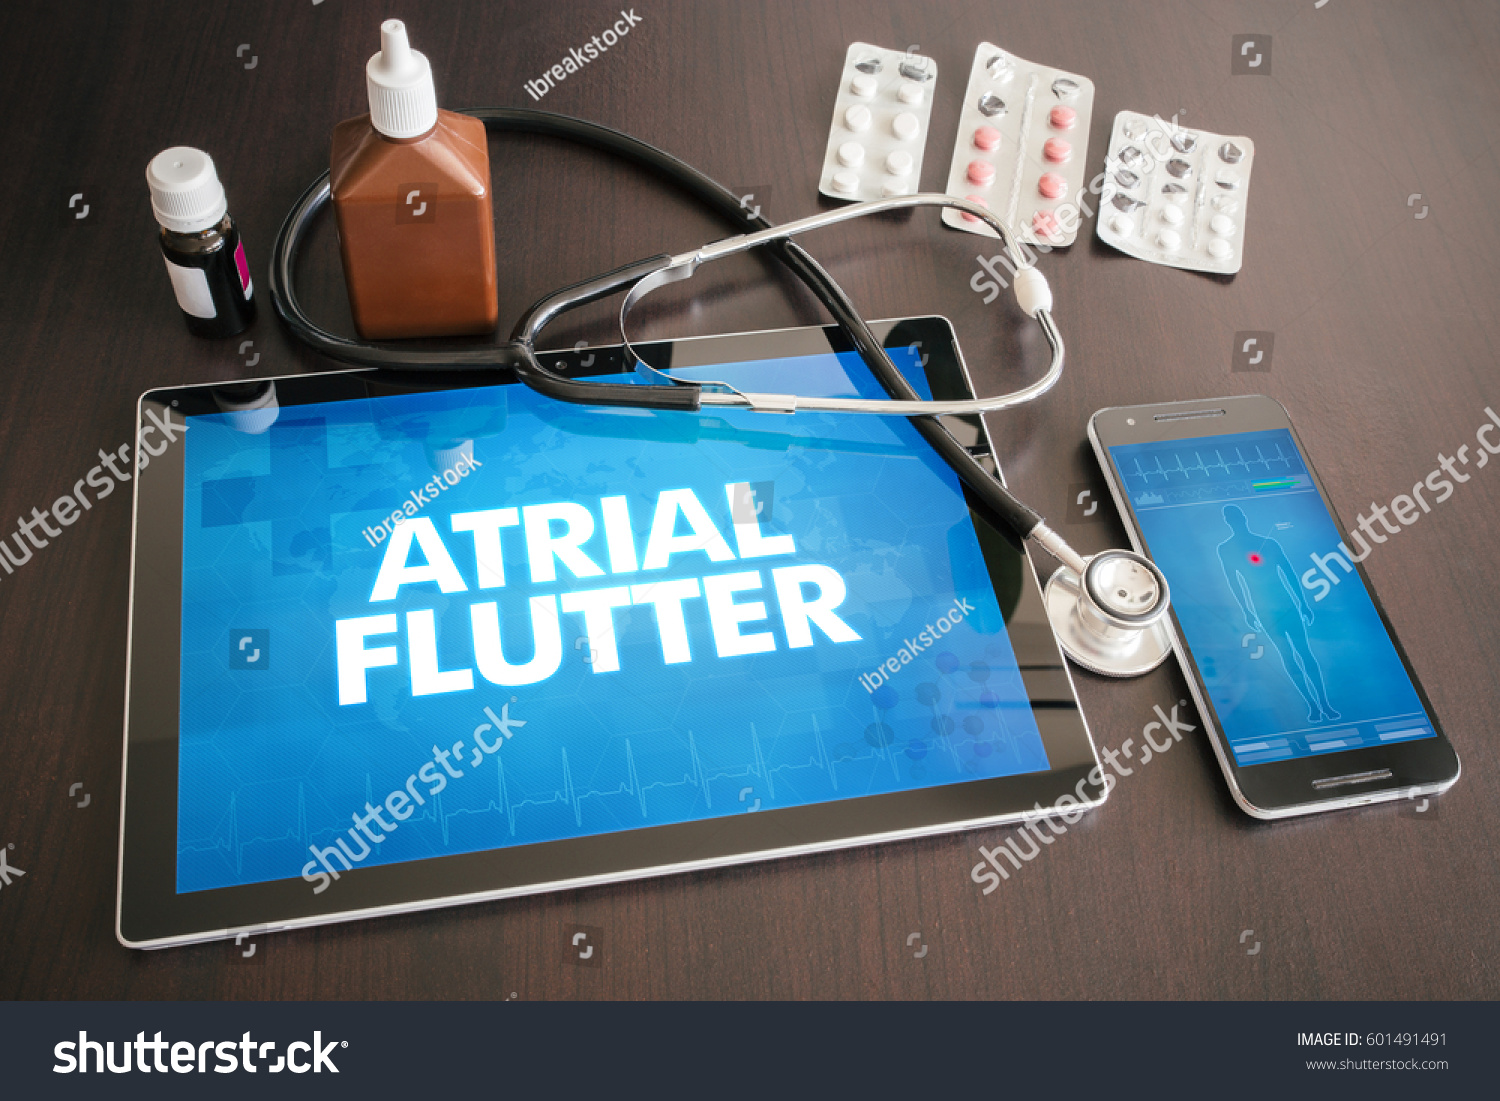 Atrial Flutter Heart Disorder Diagnosis Medical Stock Photo